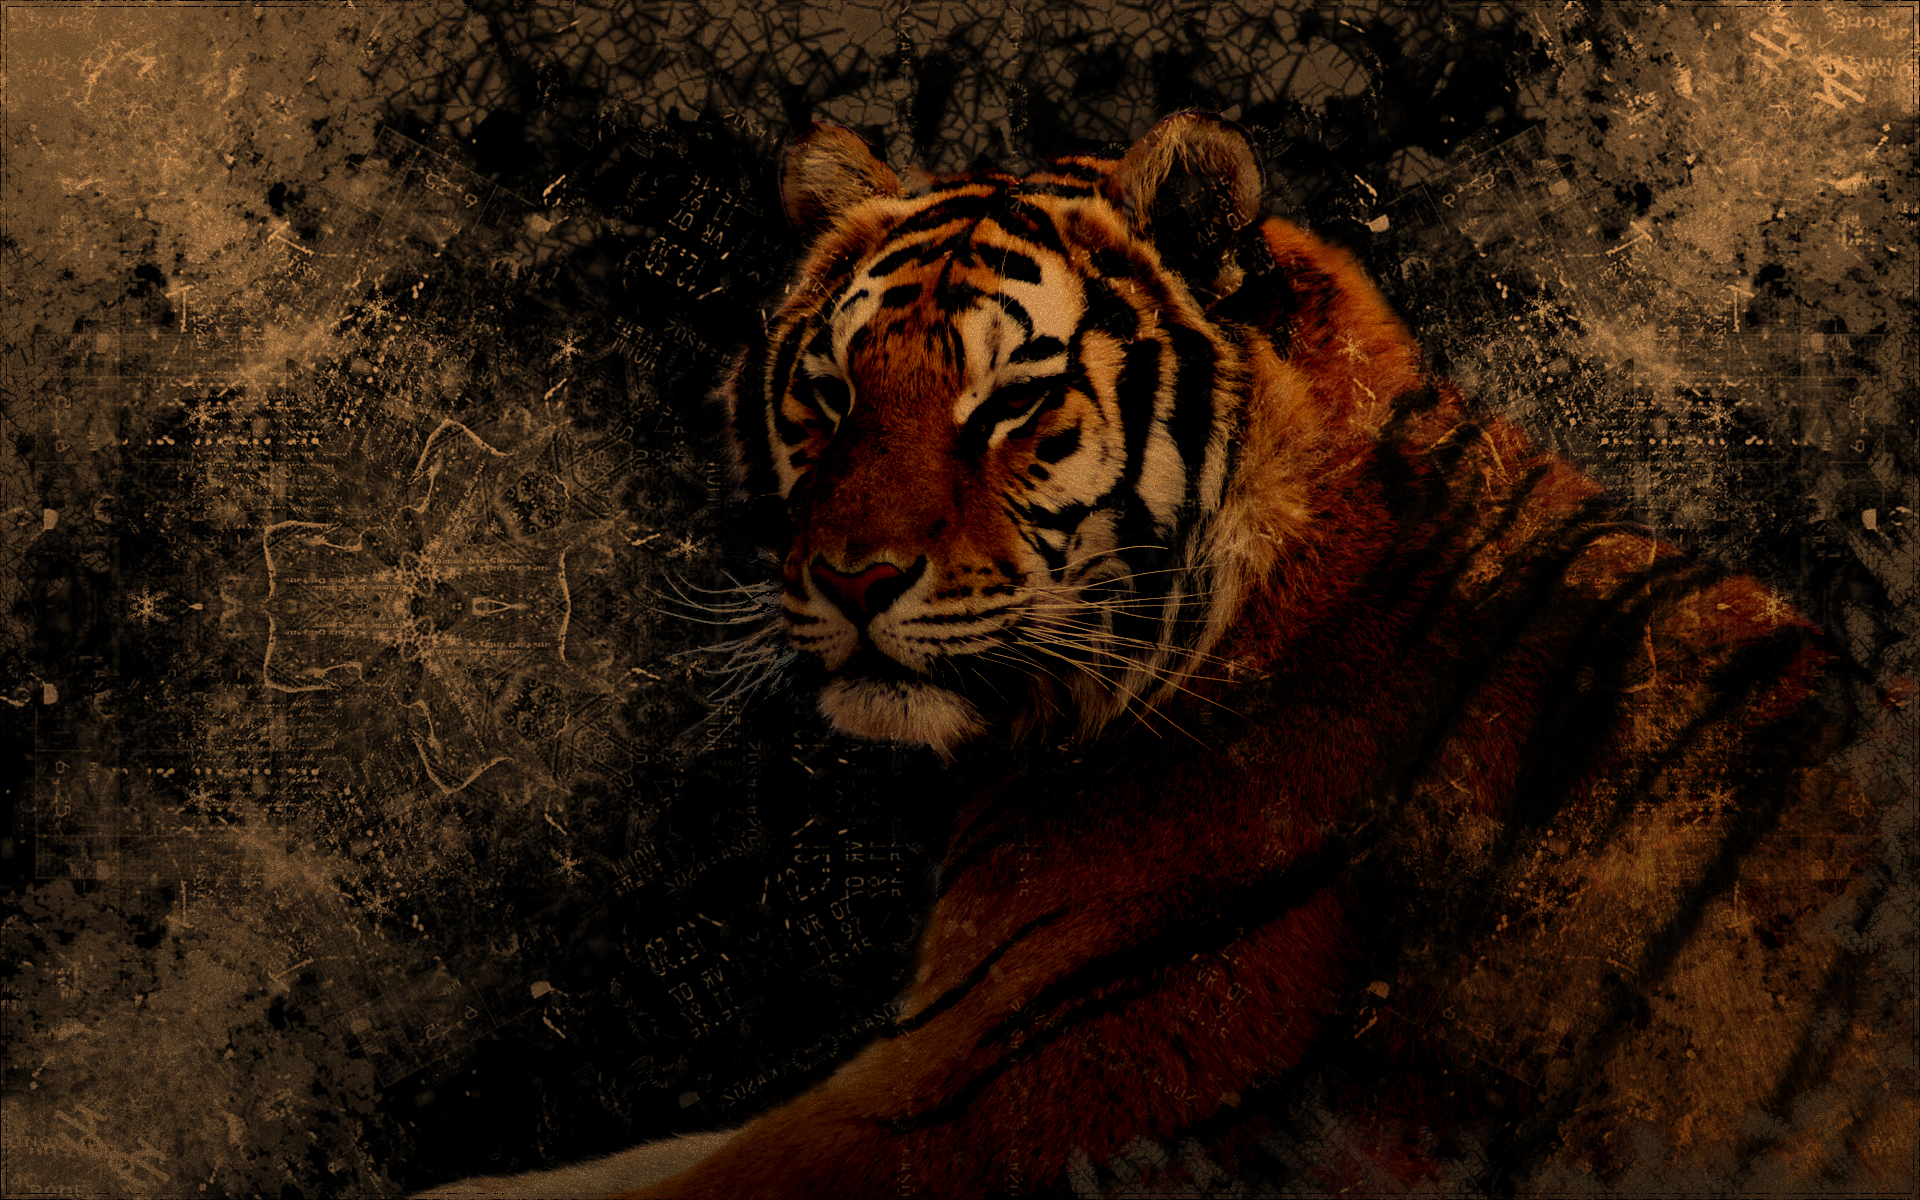 grunge_tiger_wallpaper_by_pimart-d41770m.jpg